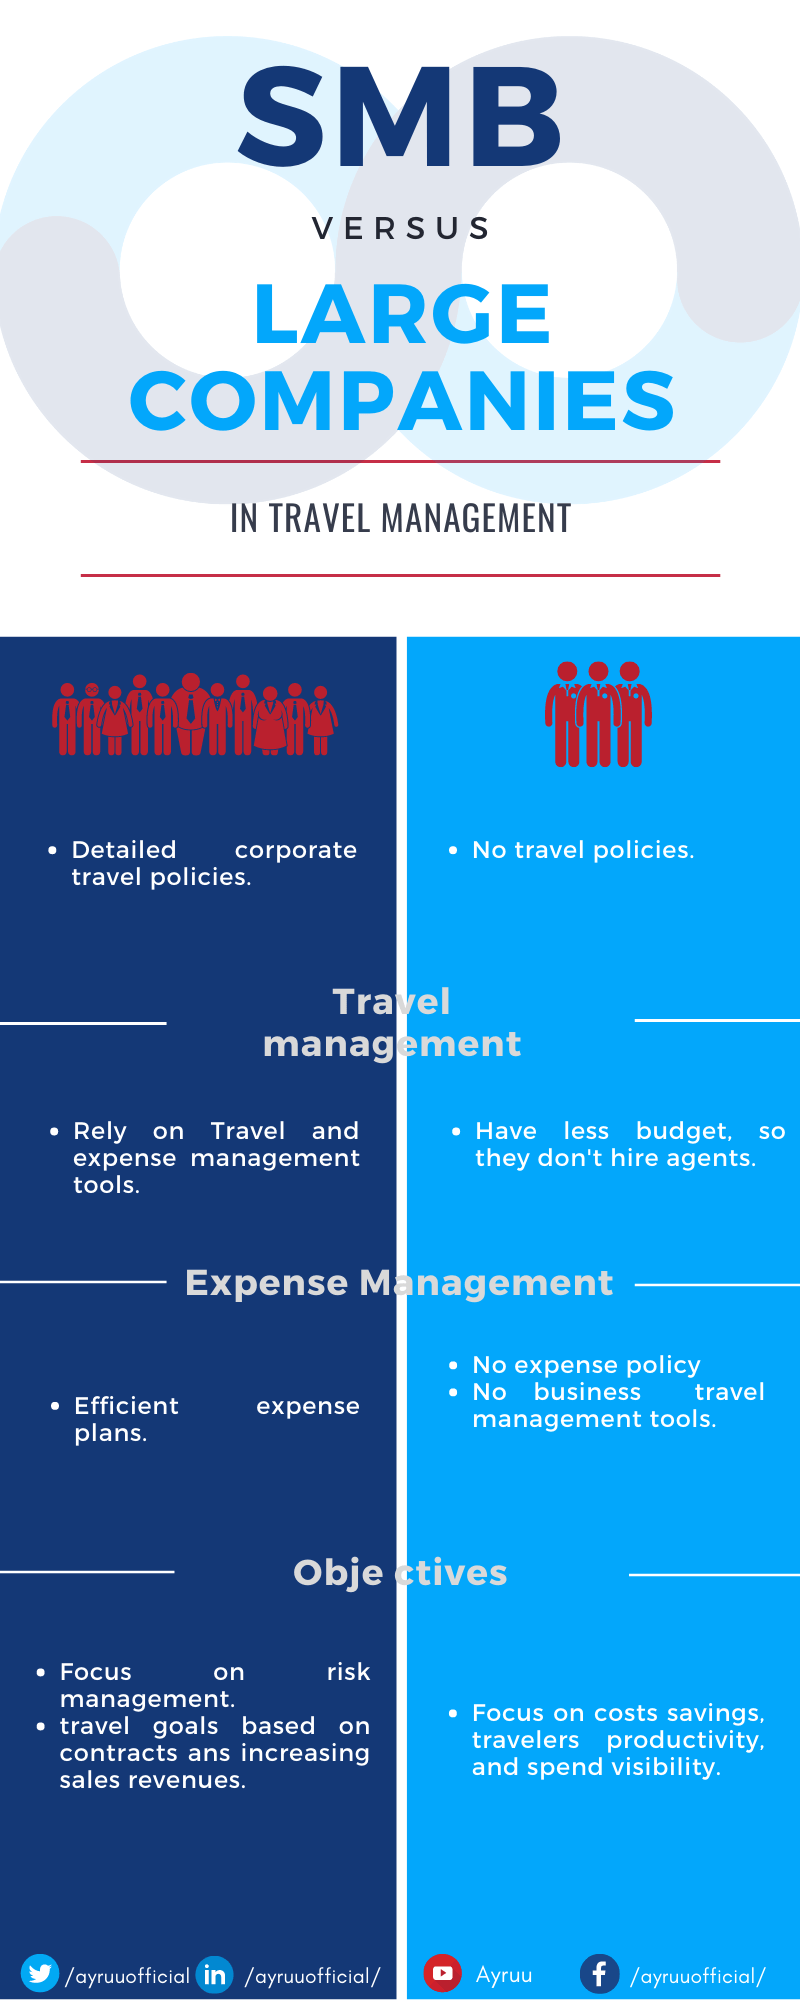 SMB travel management